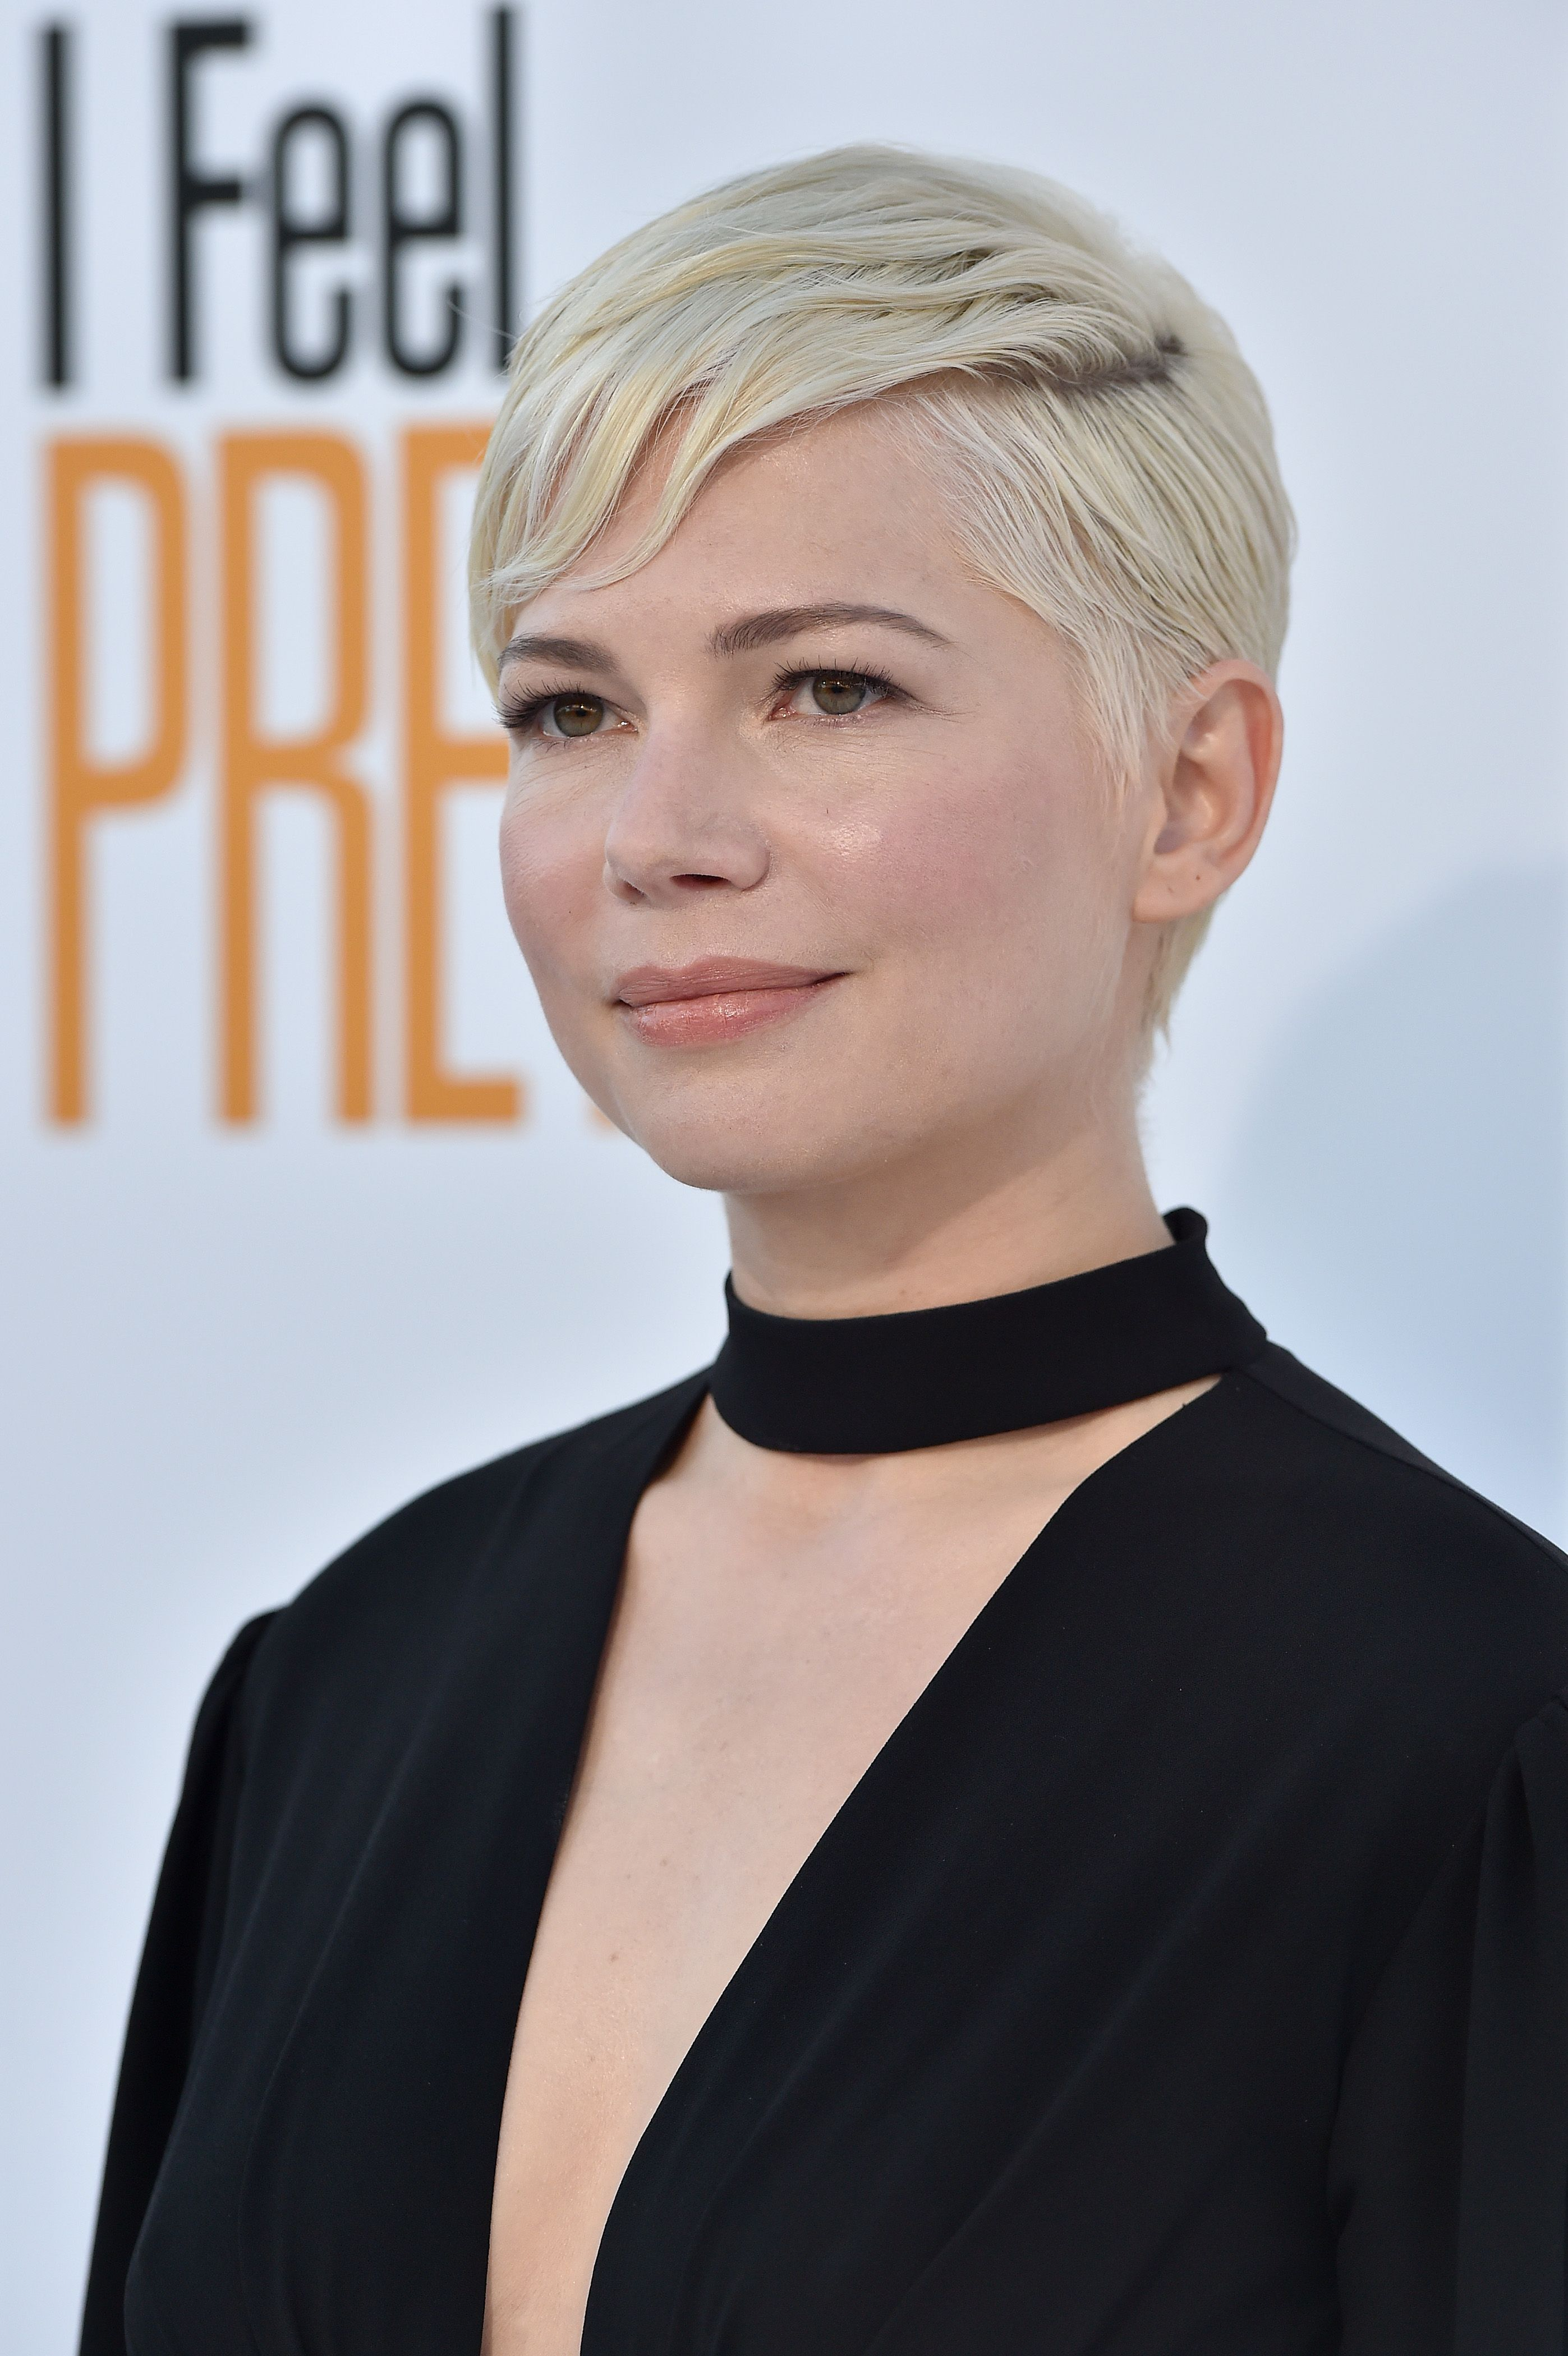 40 Cute Short Hairstyles for Women , How to Style Short Haircuts